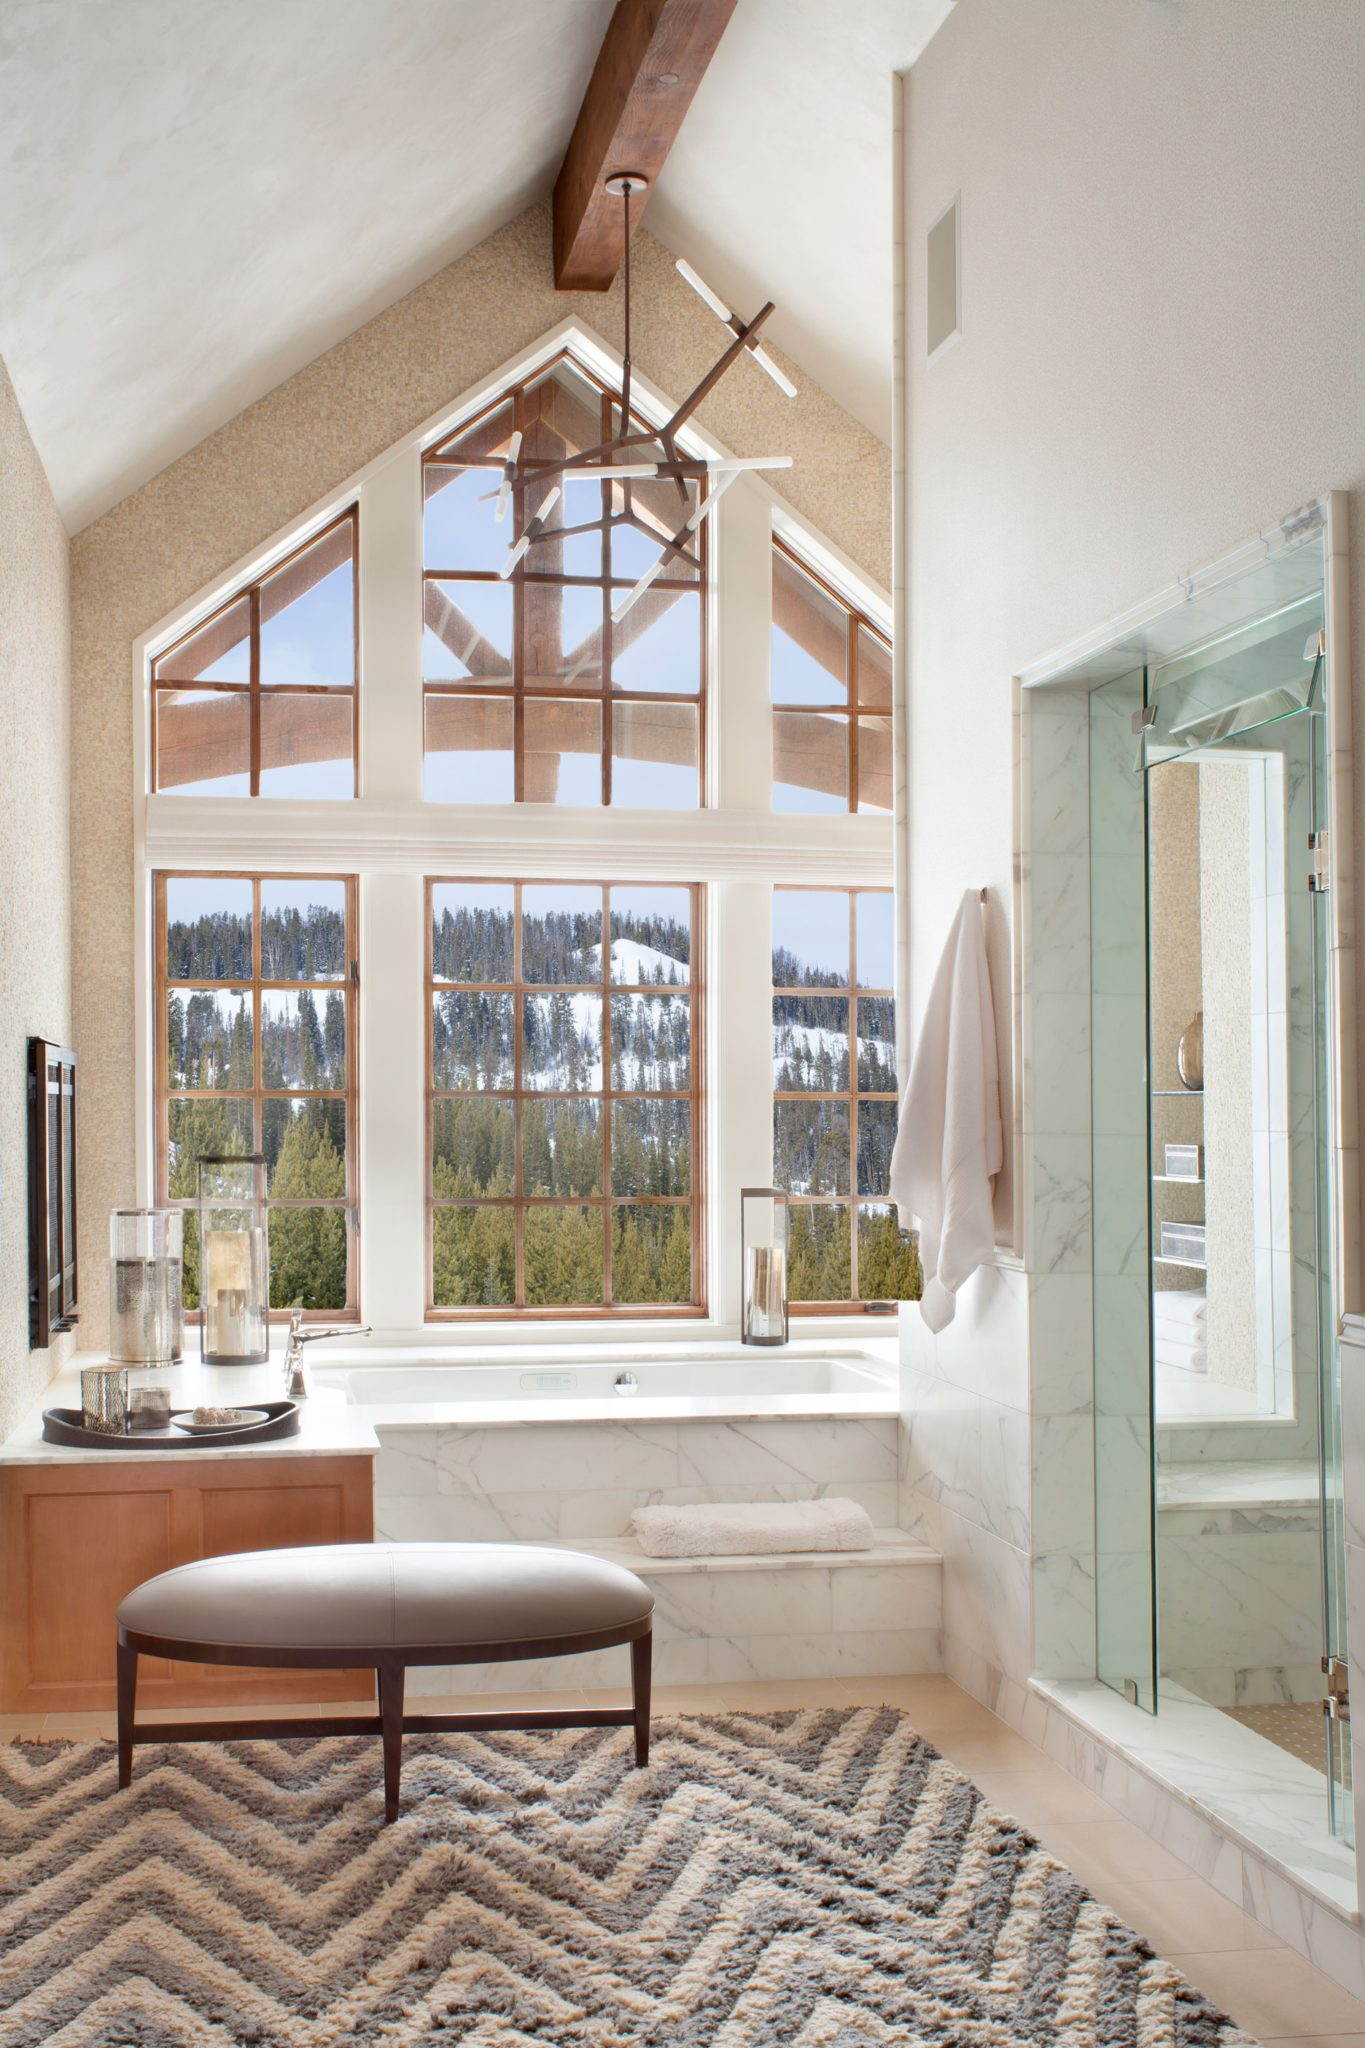 American Spirit Residence - Yellowstone Club, MT - bathroom by LKID